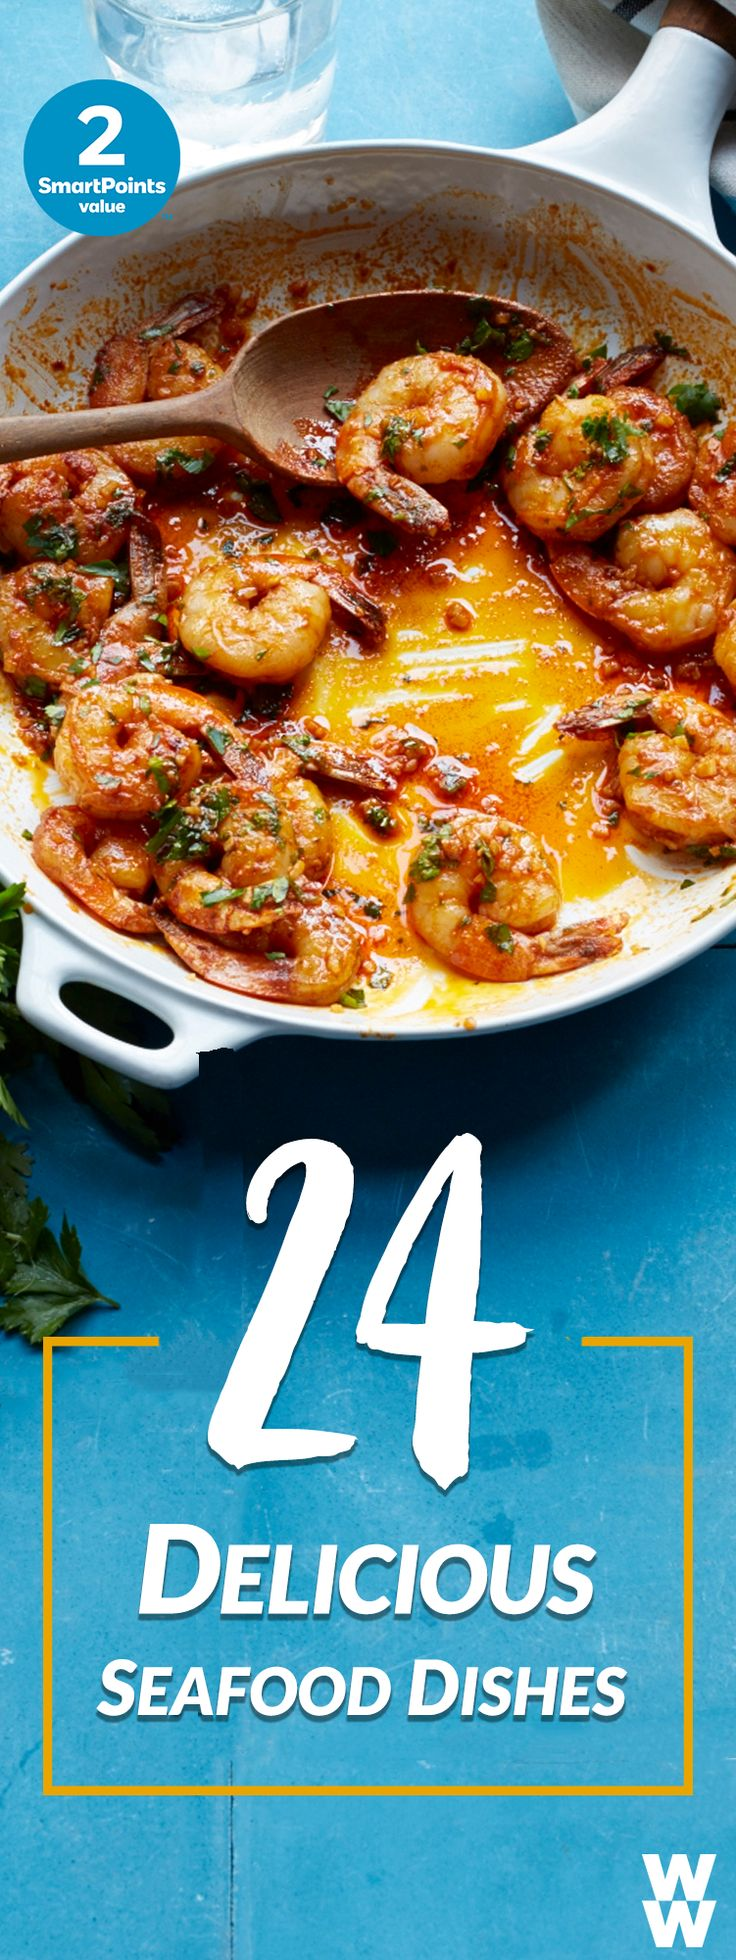 Garlic Seared Shrimp, Grilled Mahi Mahi, Mexican Spiced Crab Burgers + more! | Spice up your Good Friday dinner with 24 fun, fresh seafood dishes.